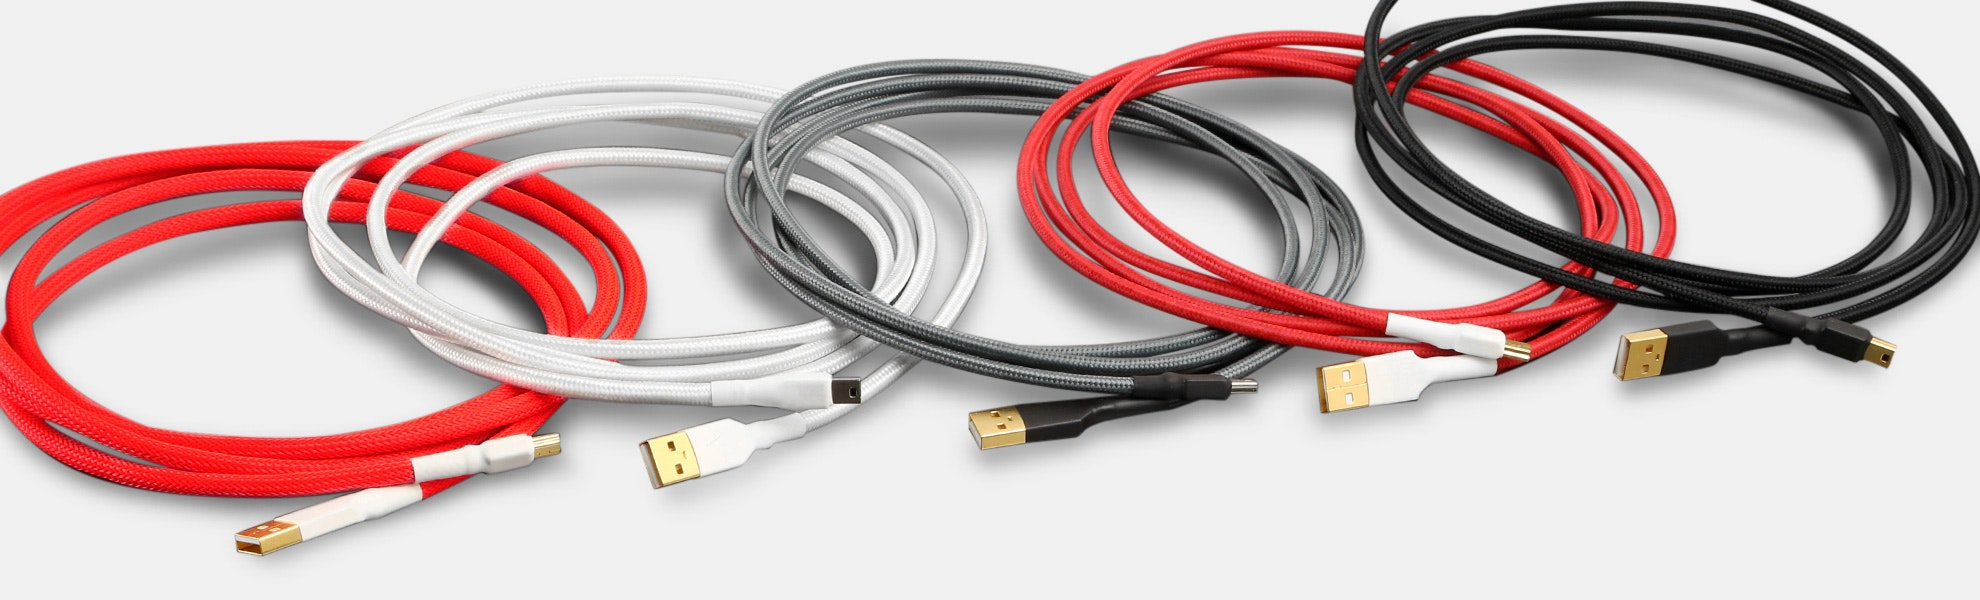 Sentraq Sleeved USB Cables